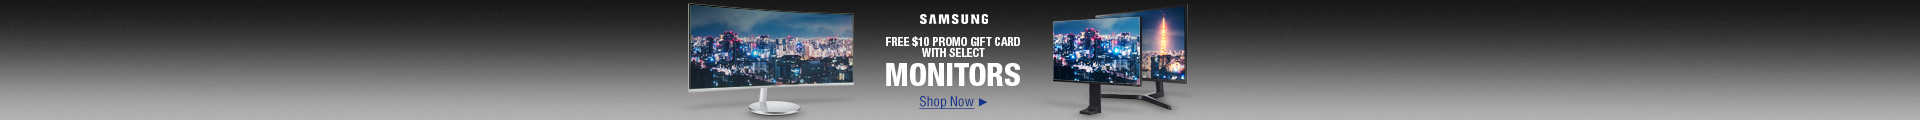 Free $10 Promo Gift Card with Select Monitors